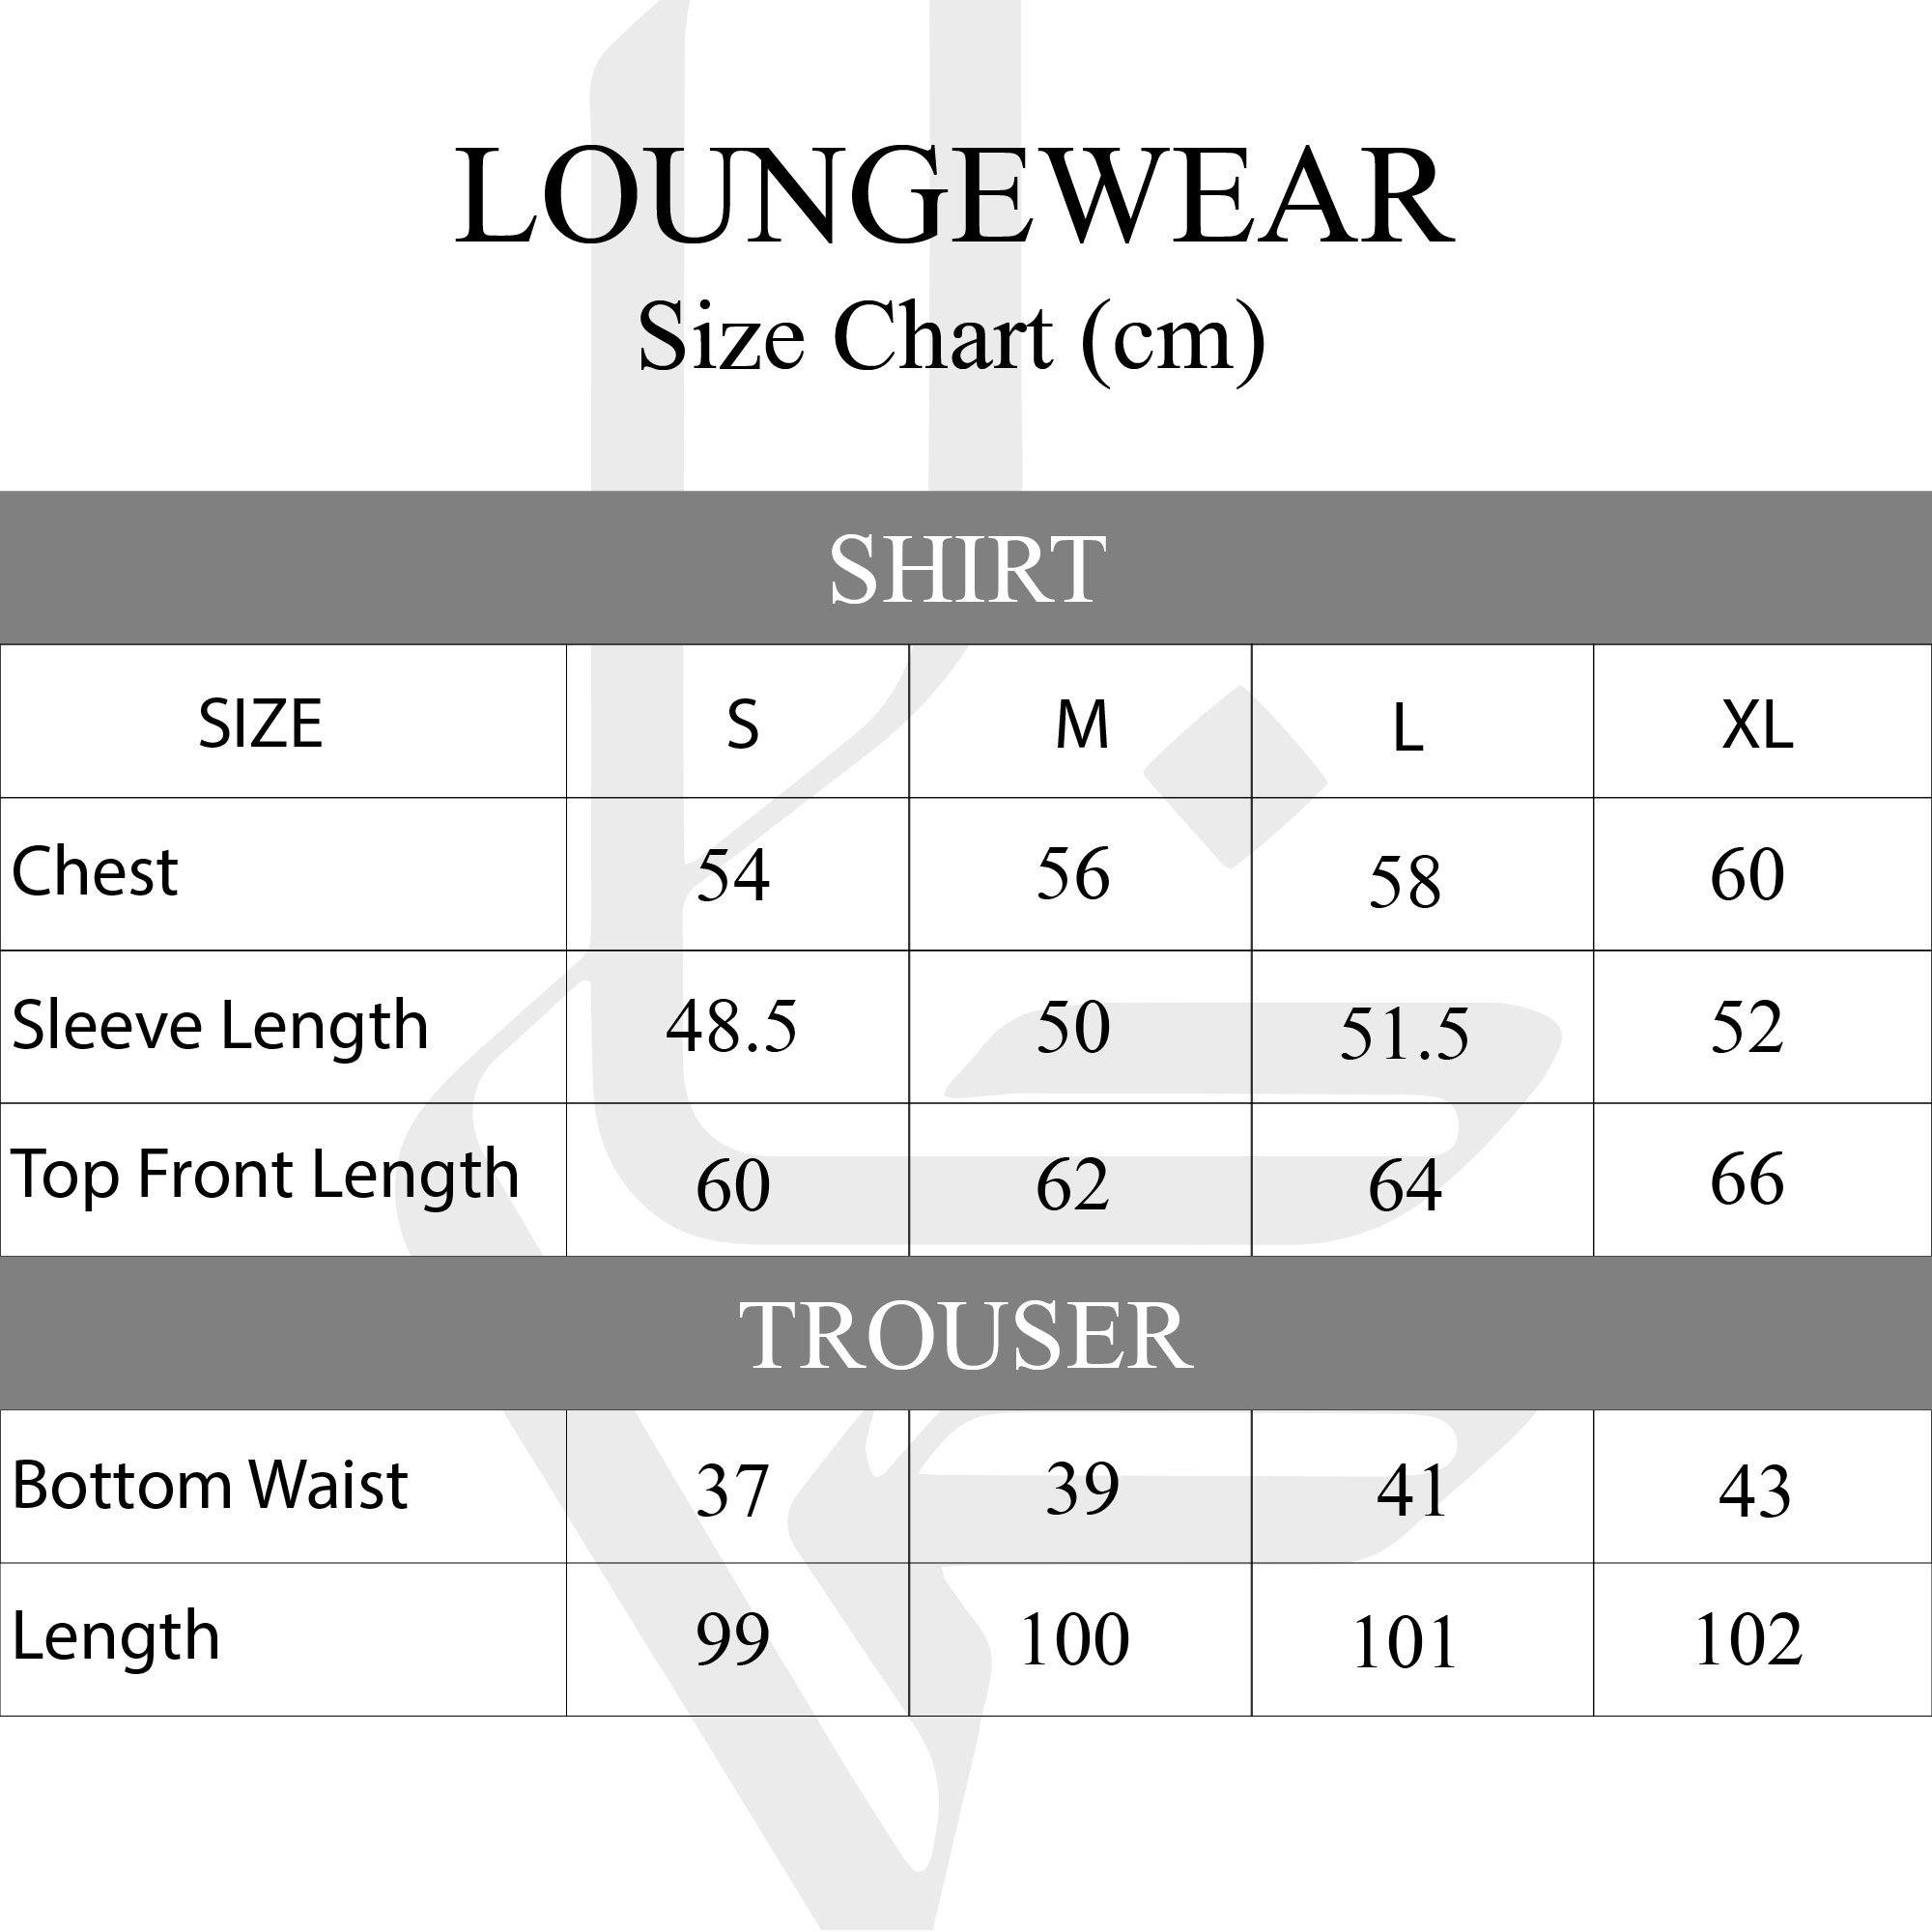 LADIES RED LOUNGEWEAR LW-025 LOUNGEWEAR FASSTIGIR